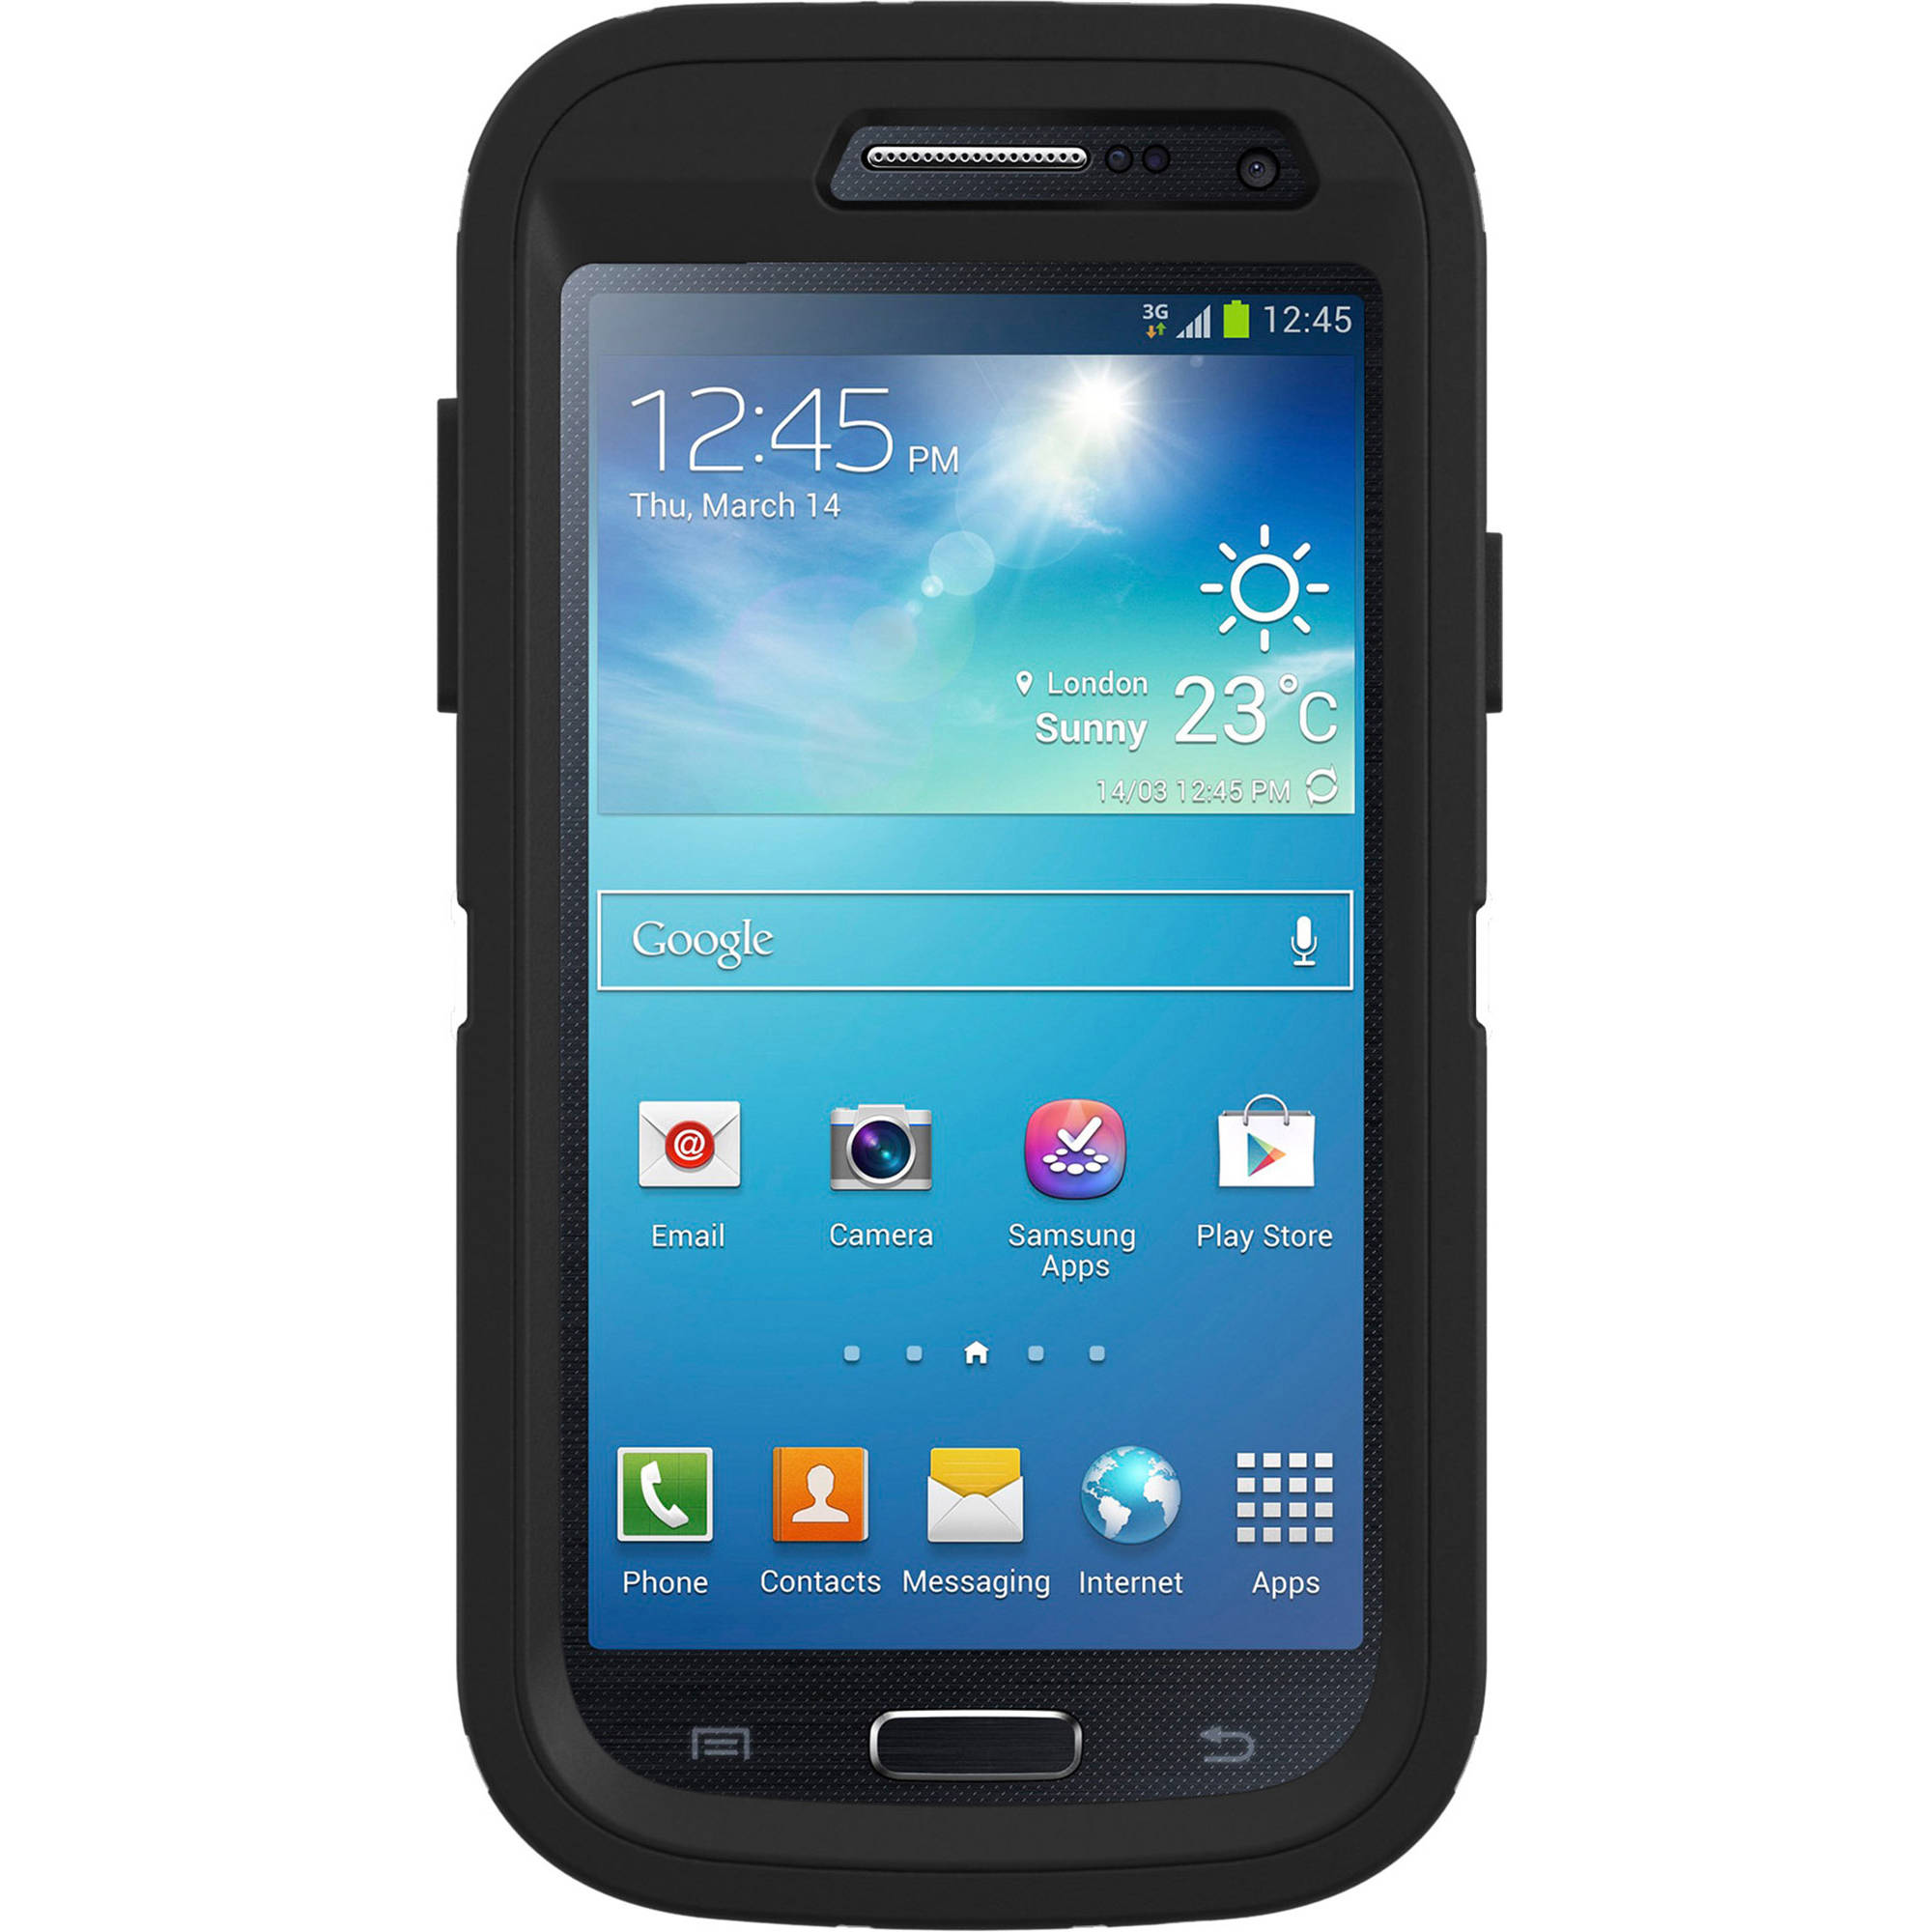 samsung galaxy s4 phone black. otterbox defender series case for samsung galaxy s4 - black walmart.com phone a